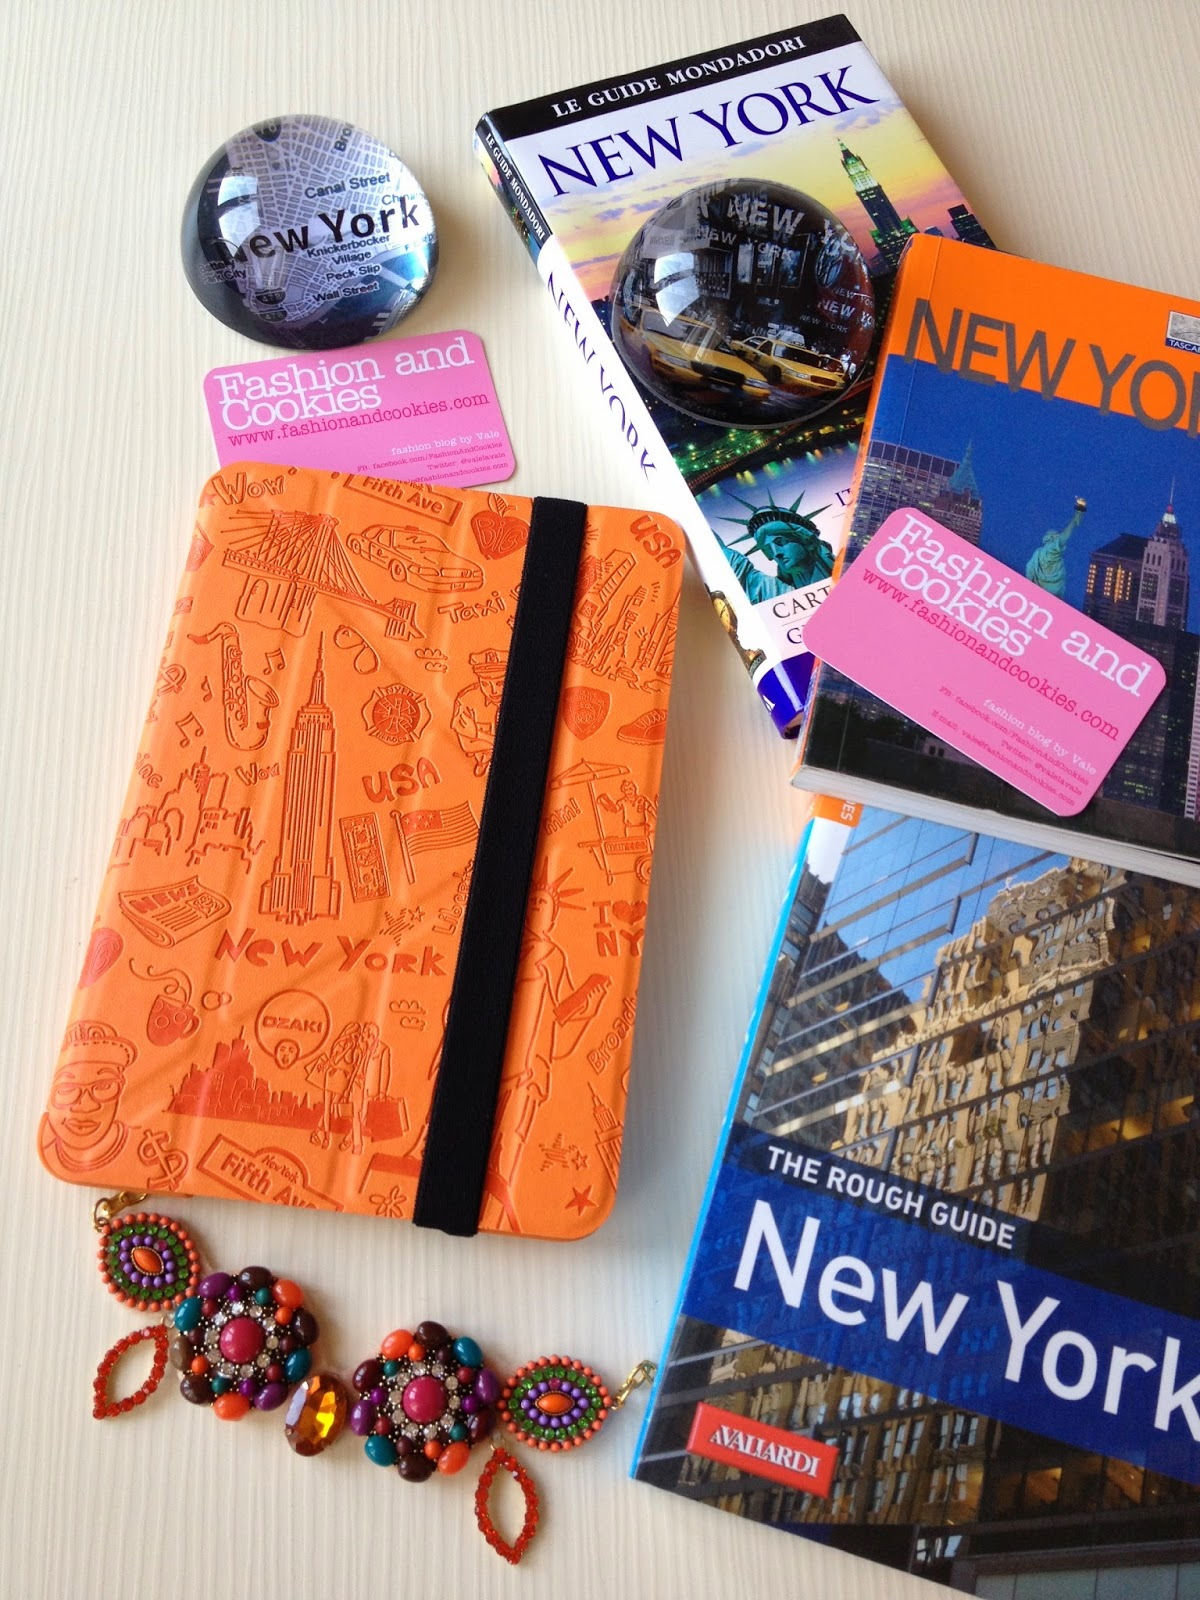 Ozaki New York travel iPad mini case, Ozaki travel ipad case, Fashion and Cookies, fashion blogger, L10Trading